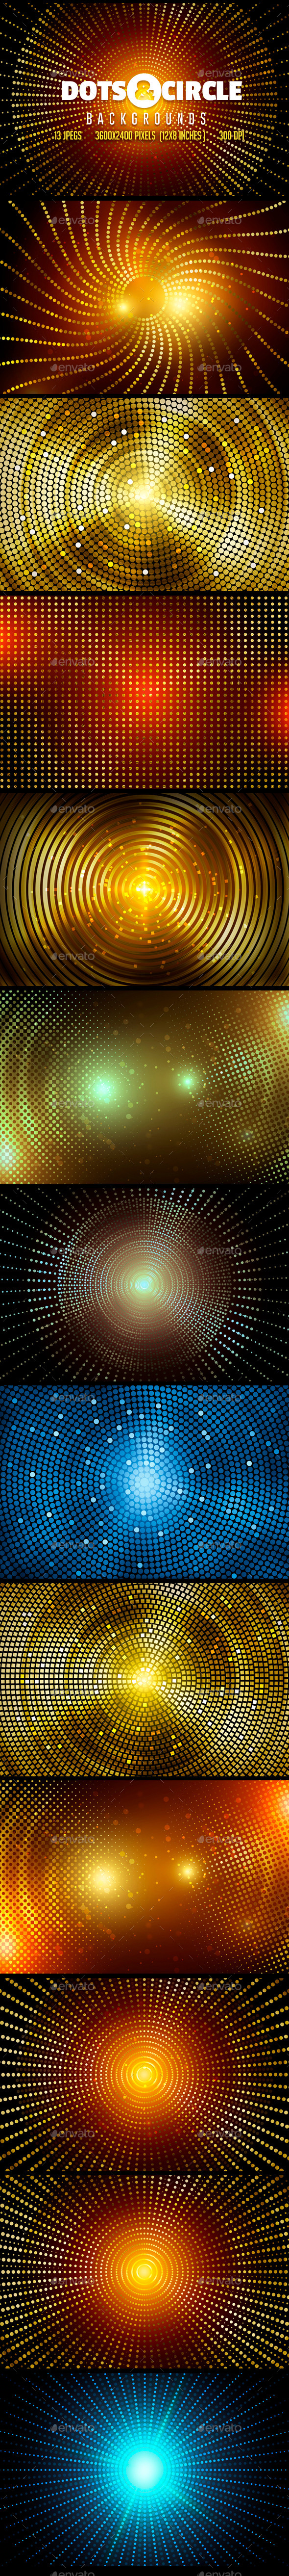 Dots & Circle Backgrounds - Miscellaneous Backgrounds